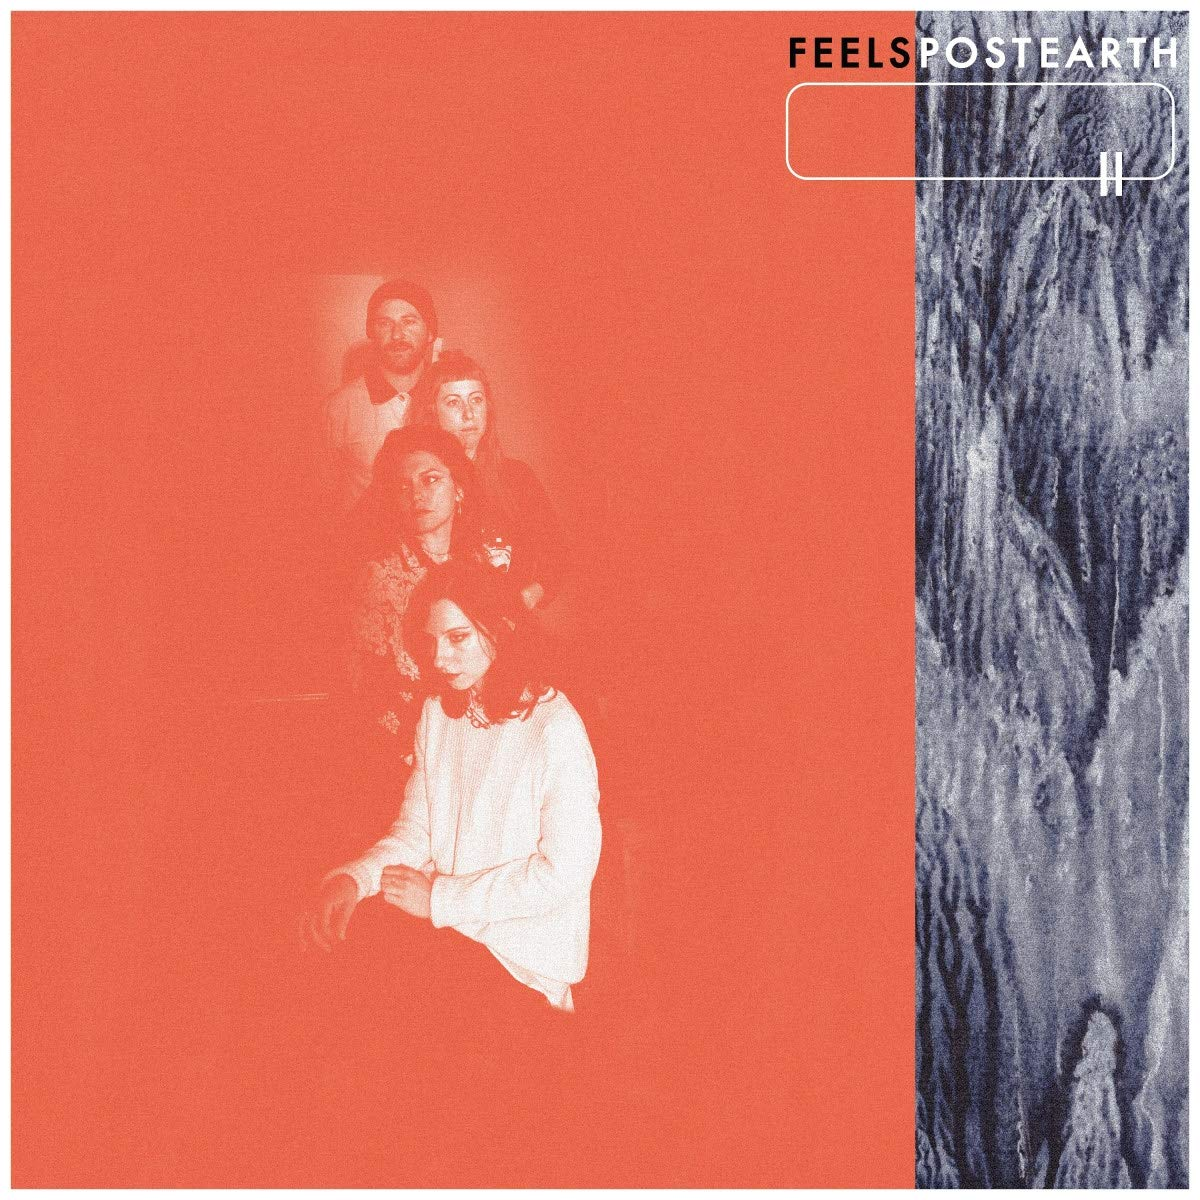 Feels - Post Earth [Limited Edition Red LP]